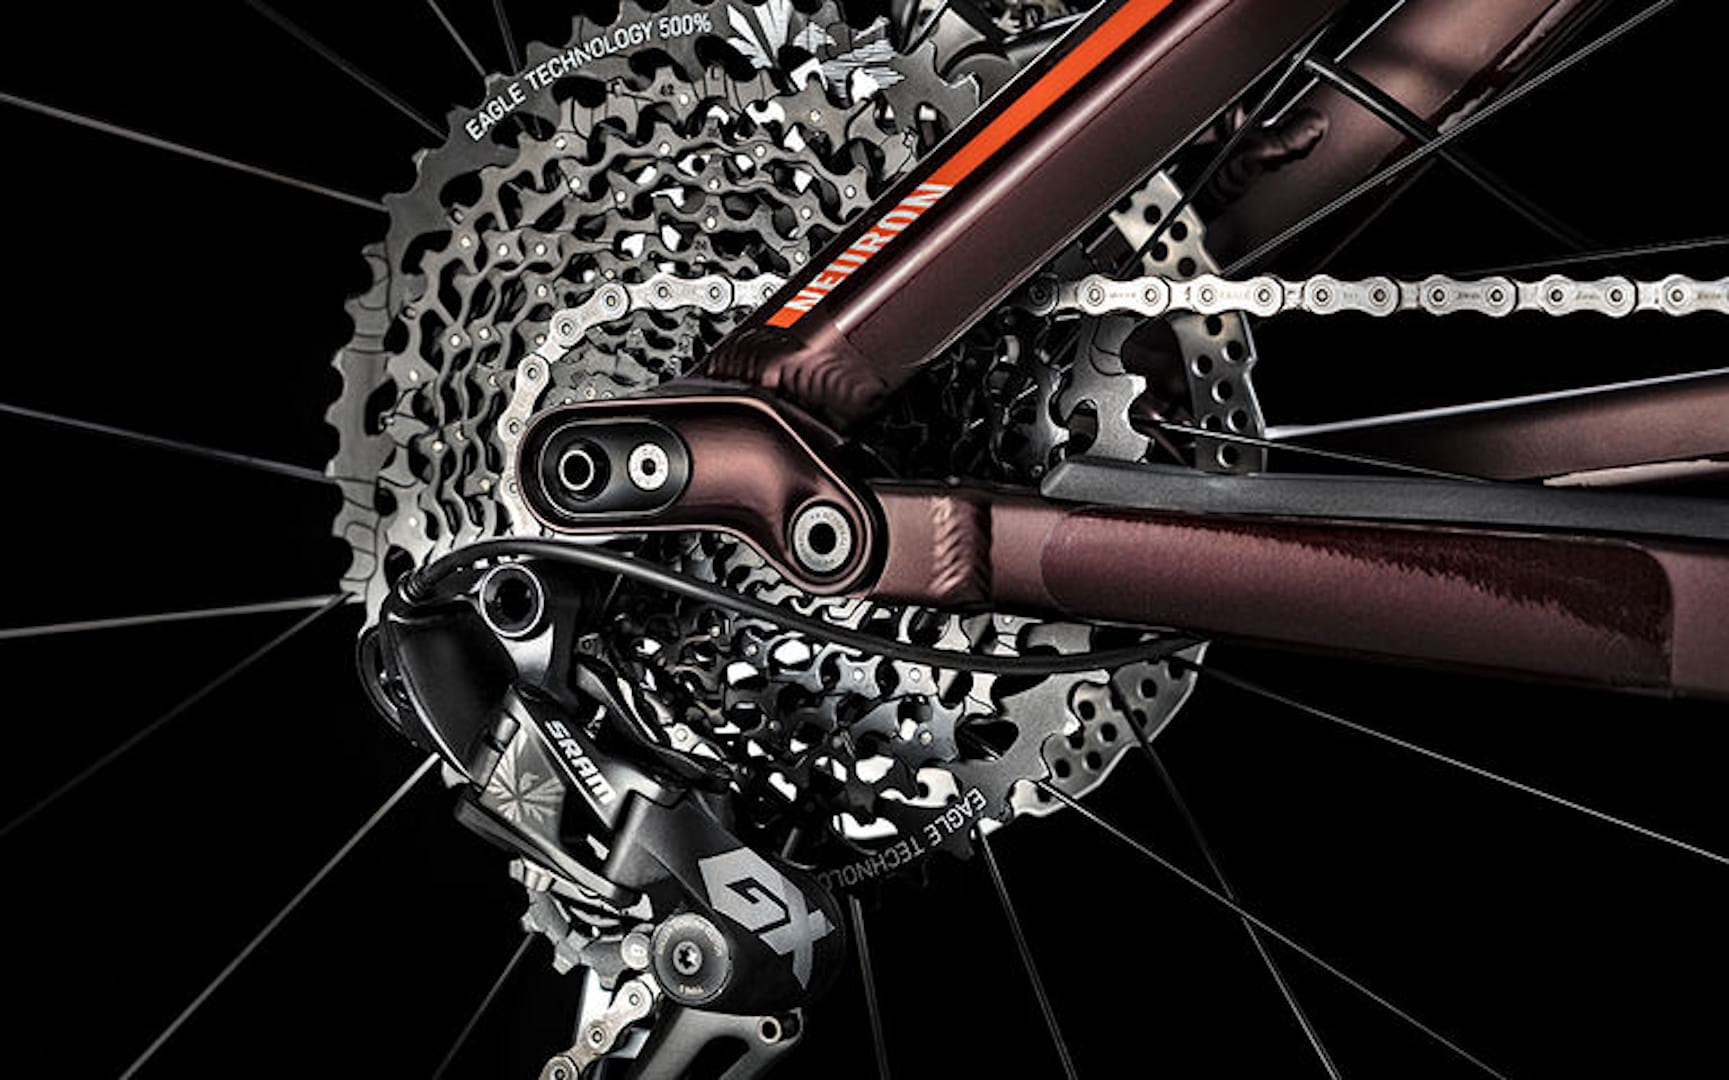 2019 Canyon Neuron Gets 130mm Travel, New Geometry And Starts At